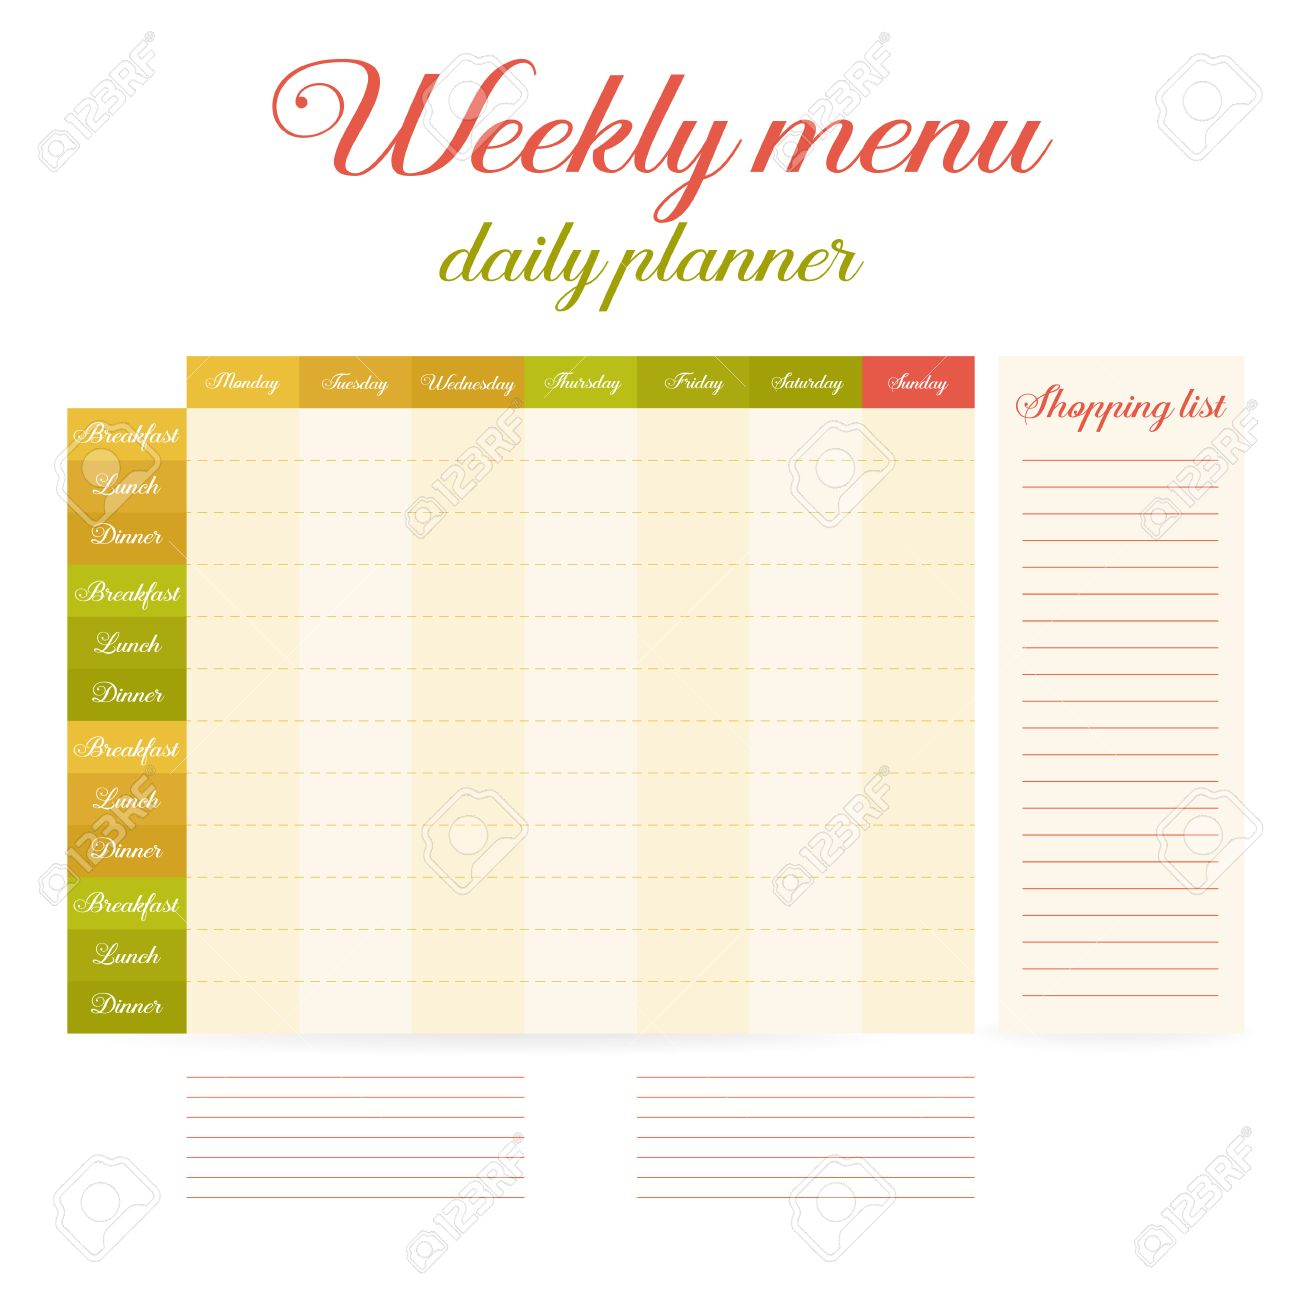 Paper Note Week Healthy Eating Daily Routine. Breakfast Lunch, Dinner.  Weekly Menu Calendar  Menu Calendar Template